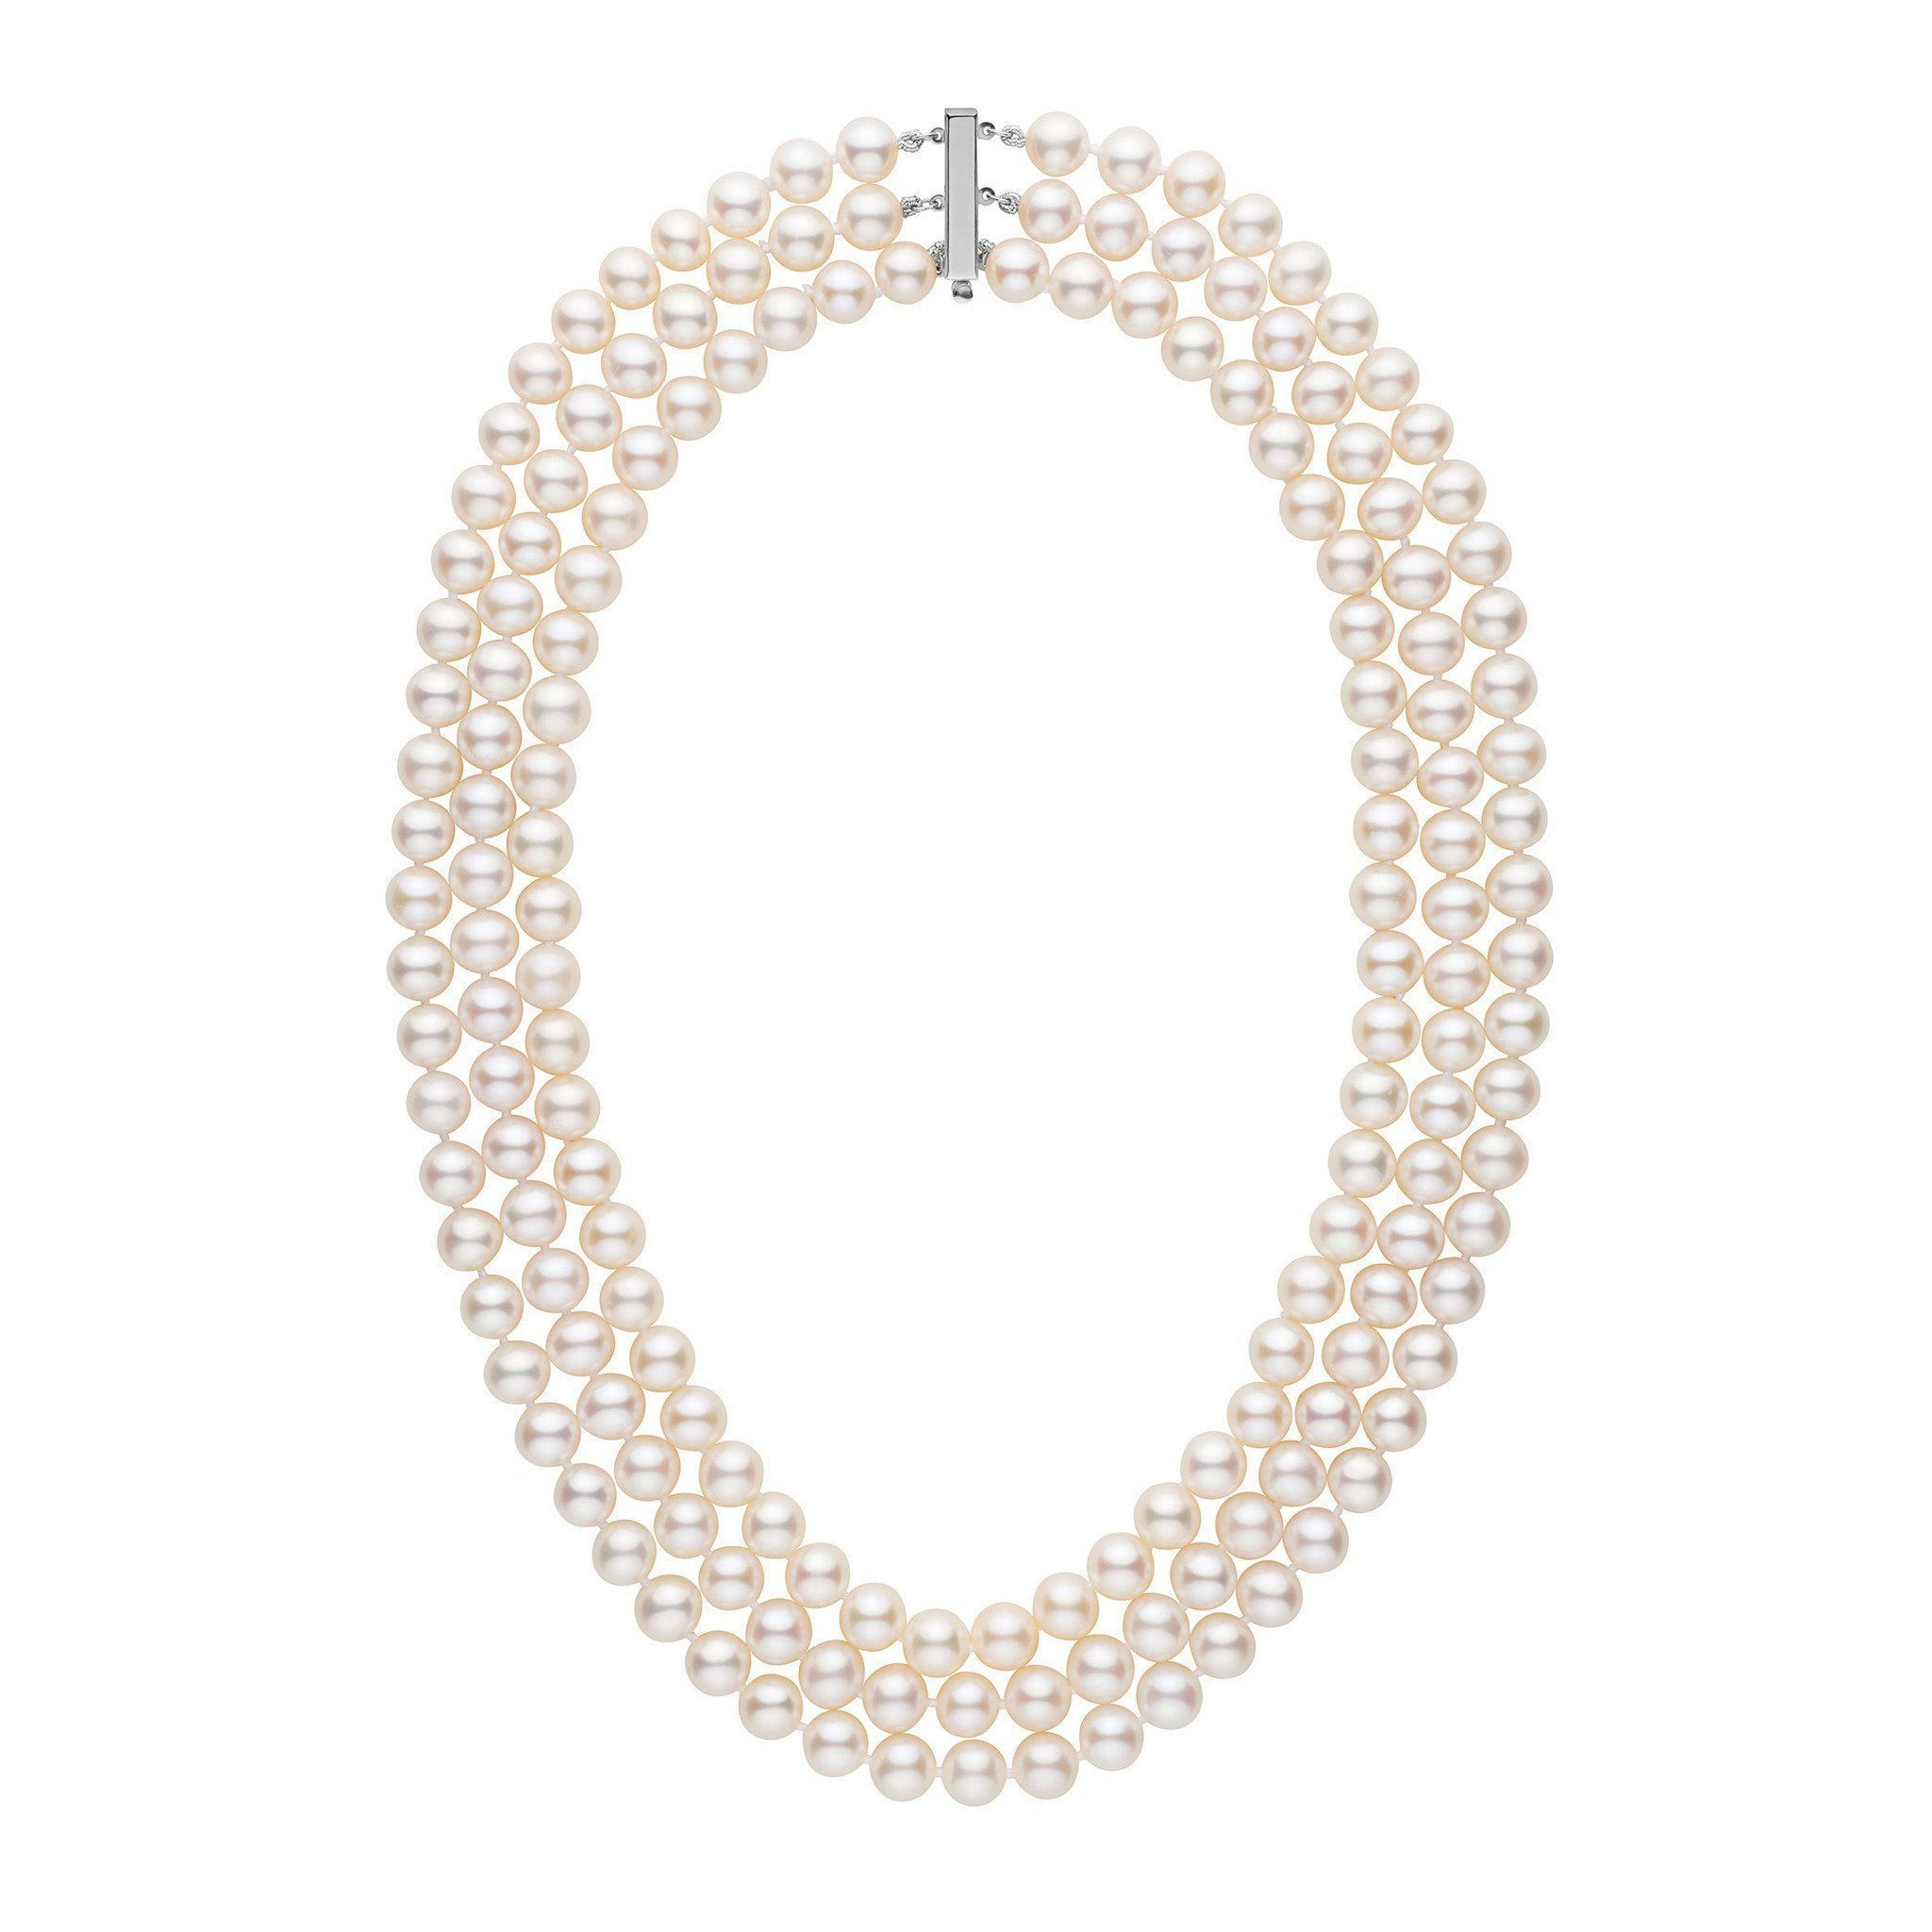 Triple Strand 8 5-9 0 mm AAA White Freshwater Pearl Necklace